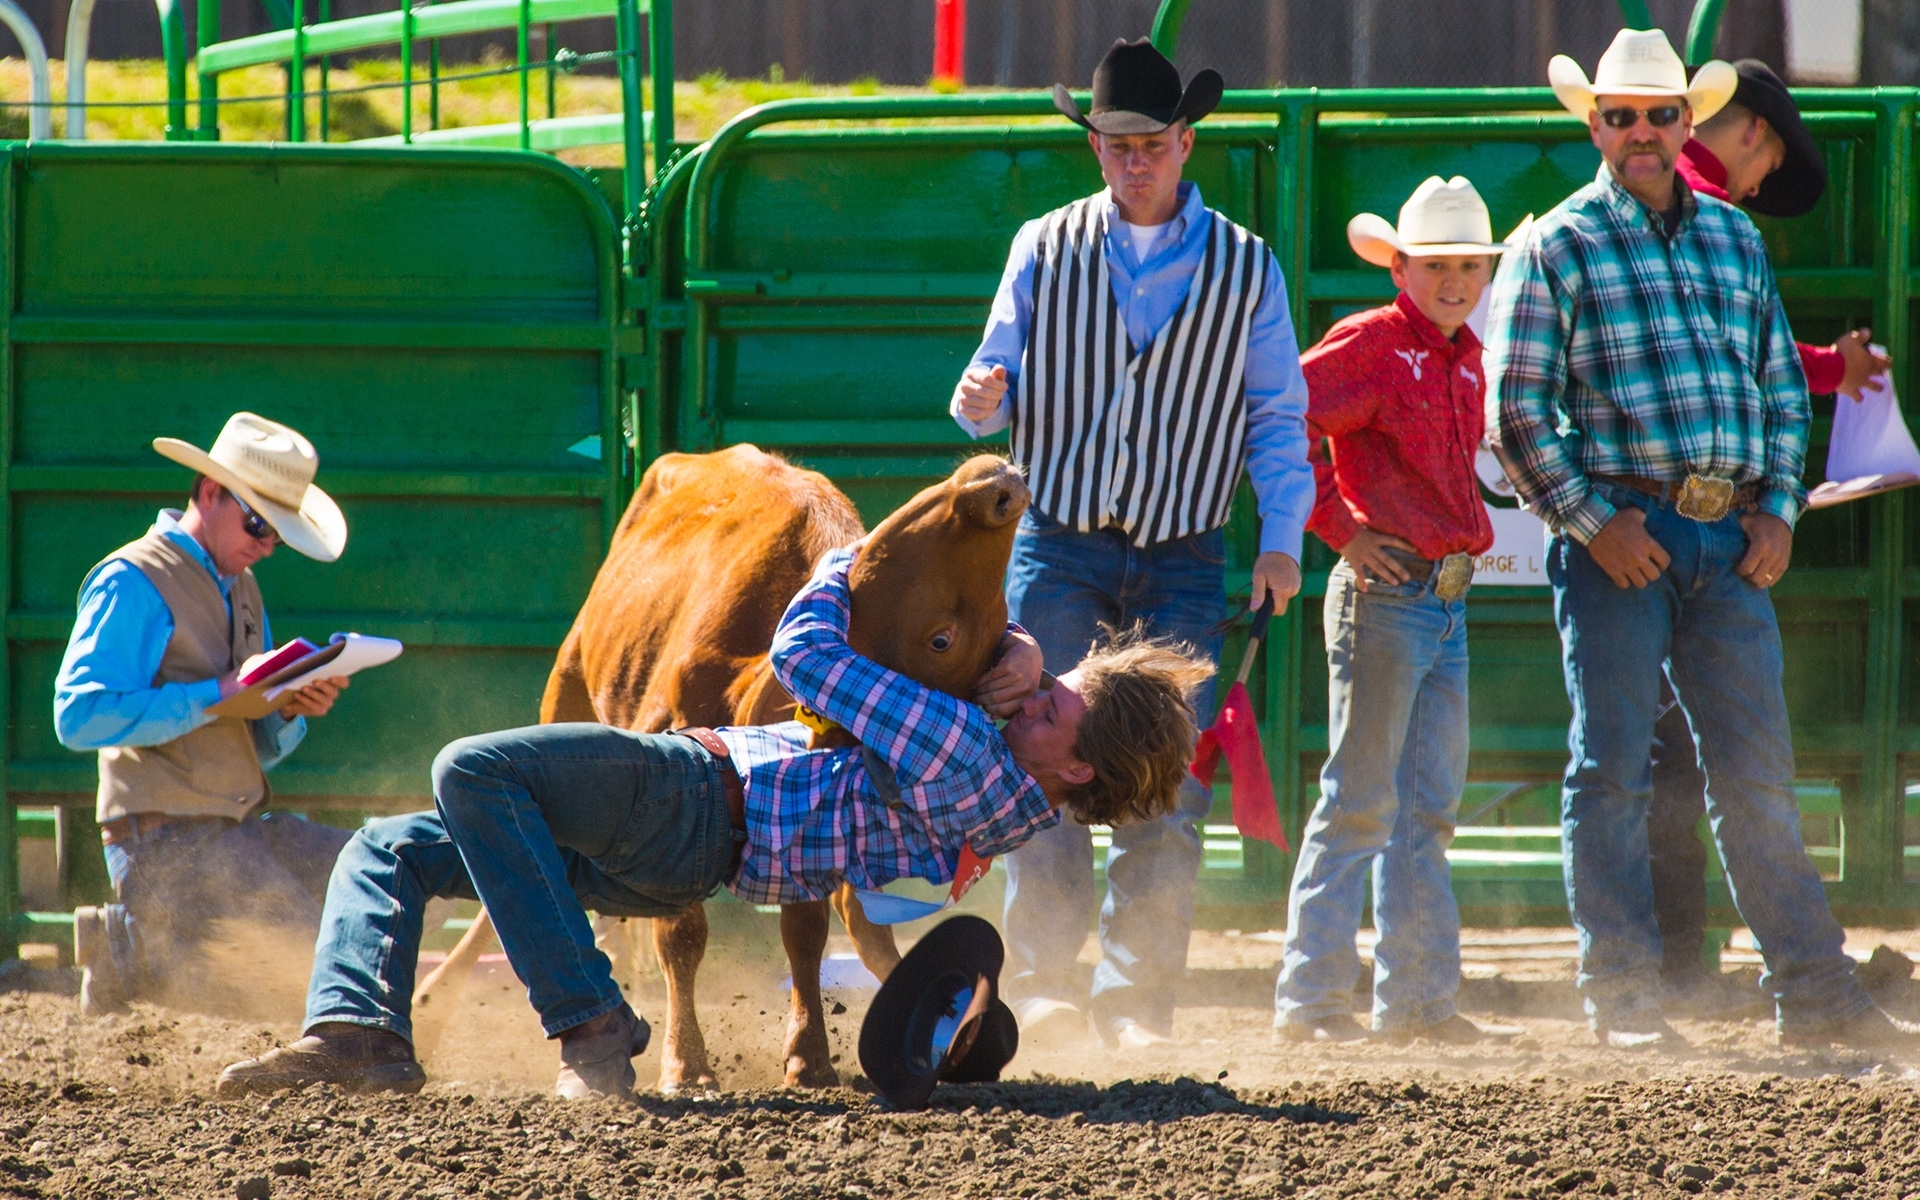 Bull-Dogging-Junior-Rodeo-Style-PB-1-Place-by-Gary-Oehrle-LV